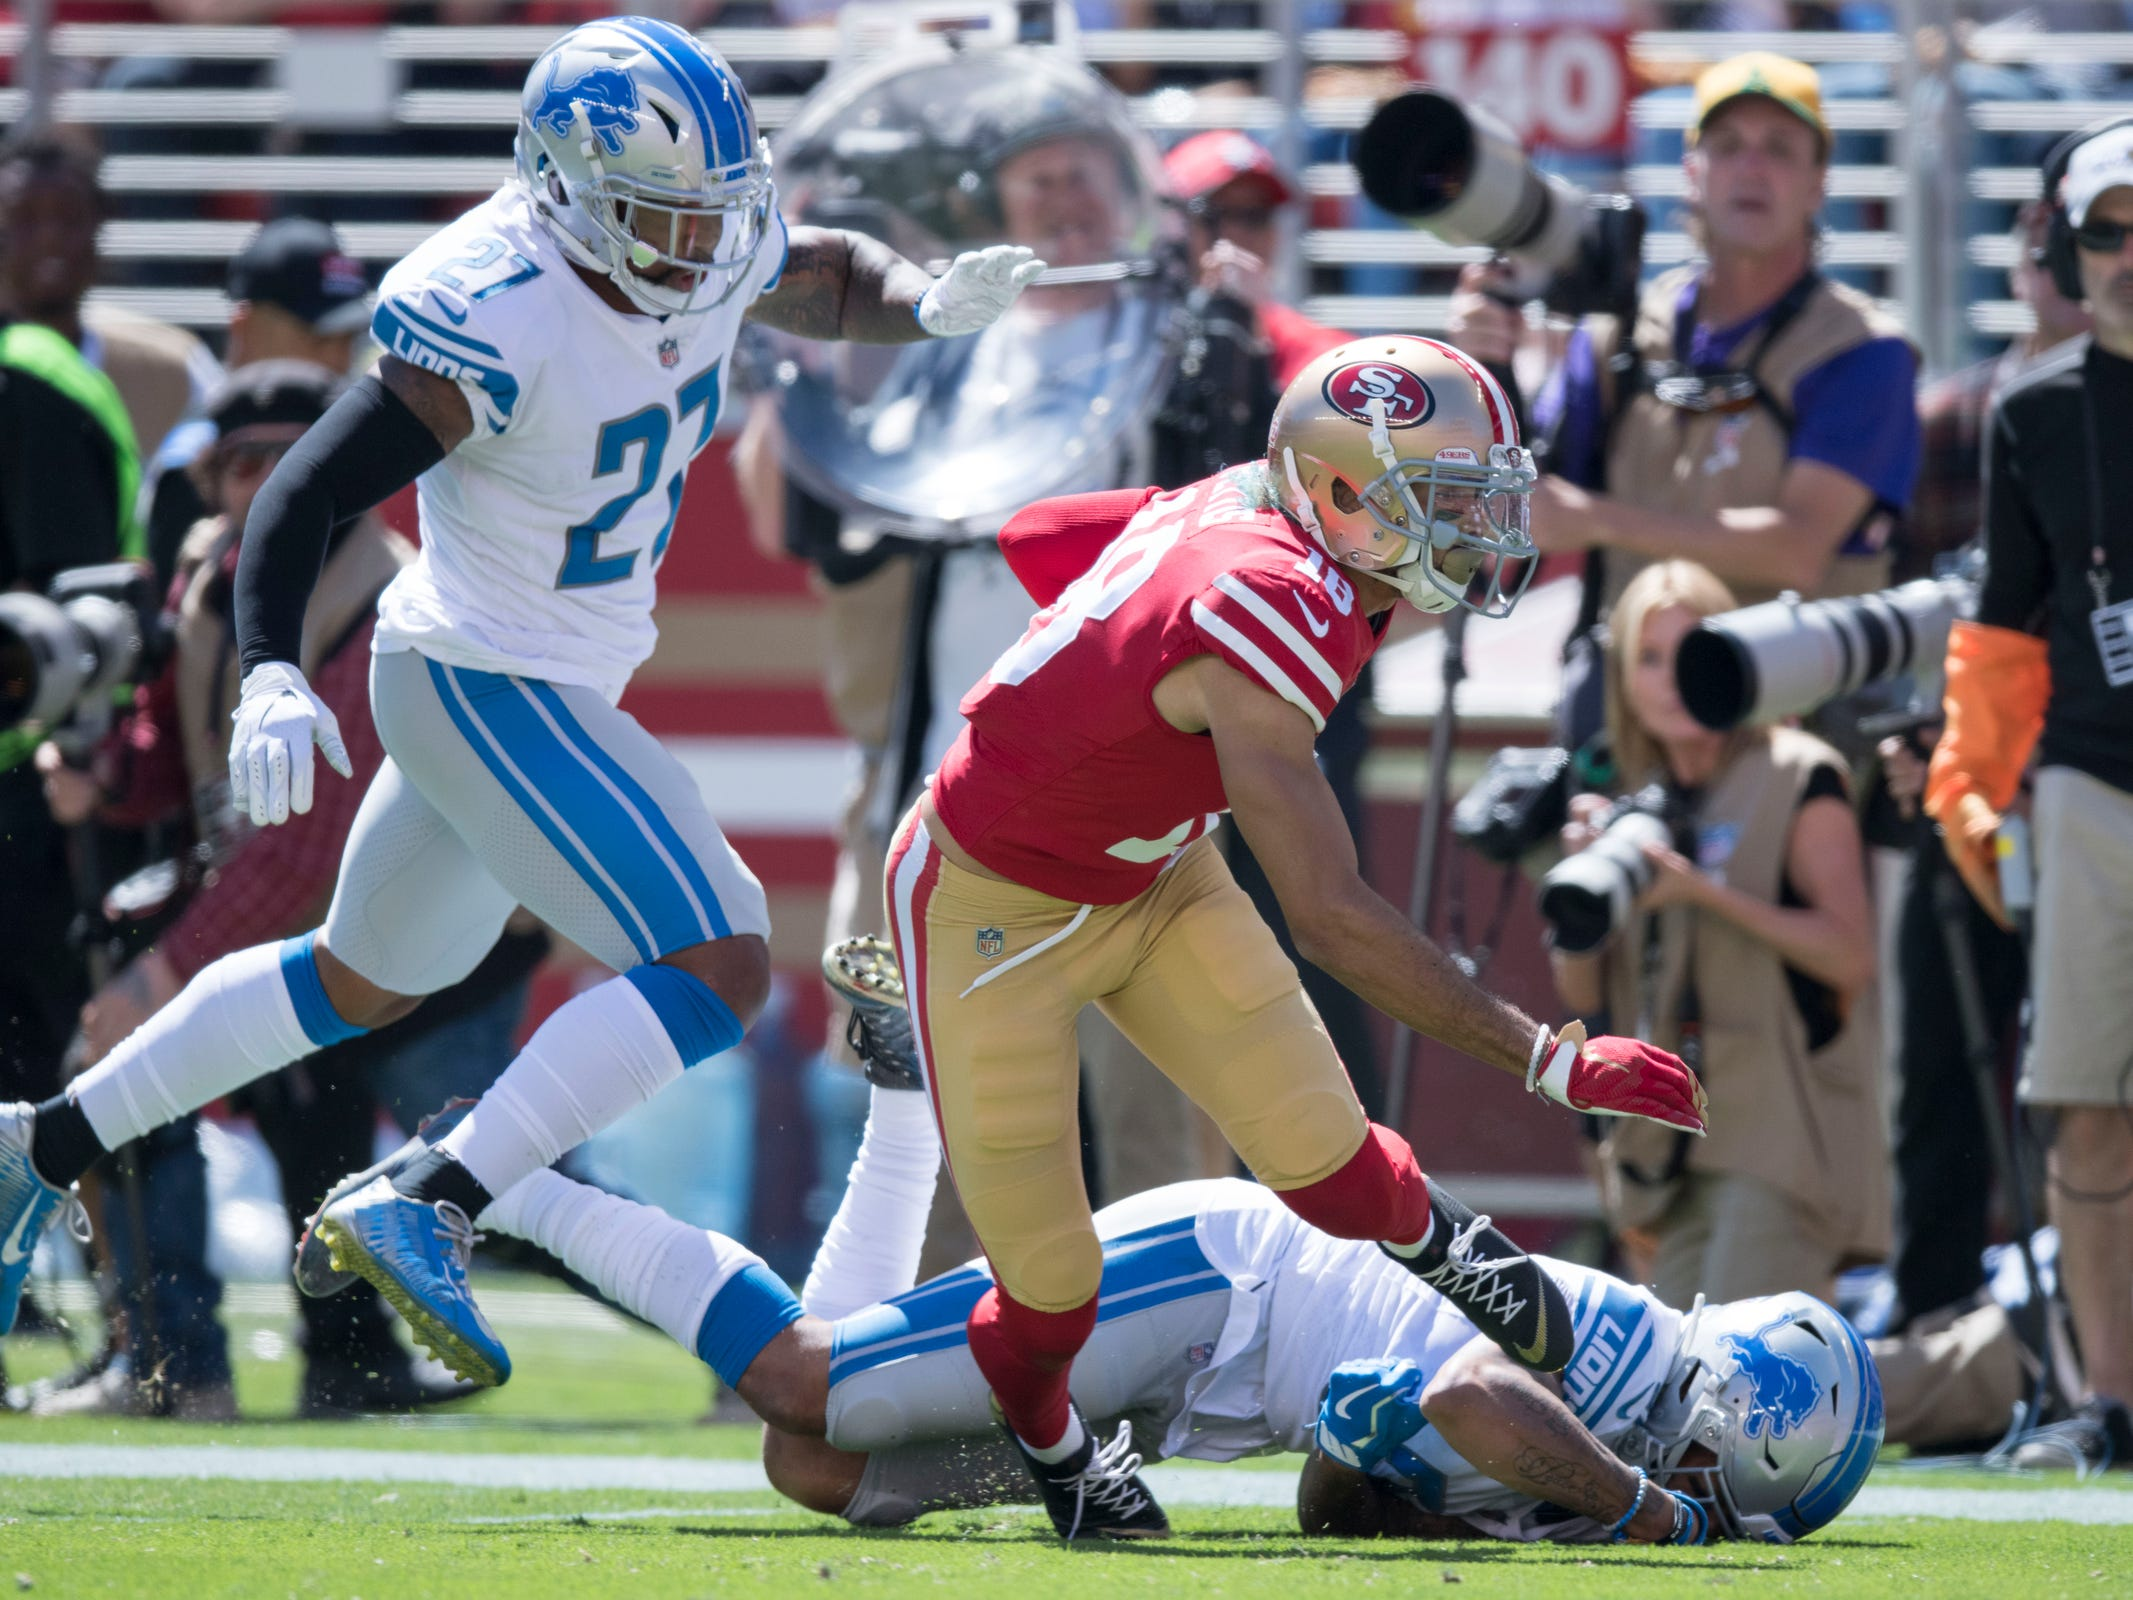 49ers wide receiver Dante Pettis runs with the football against Lions cornerback Teez Tabor (31) and defensive back Glover Quin (27) during the first quarter on Sunday, Sept. 16, 2018, in Santa Clara, Calif.